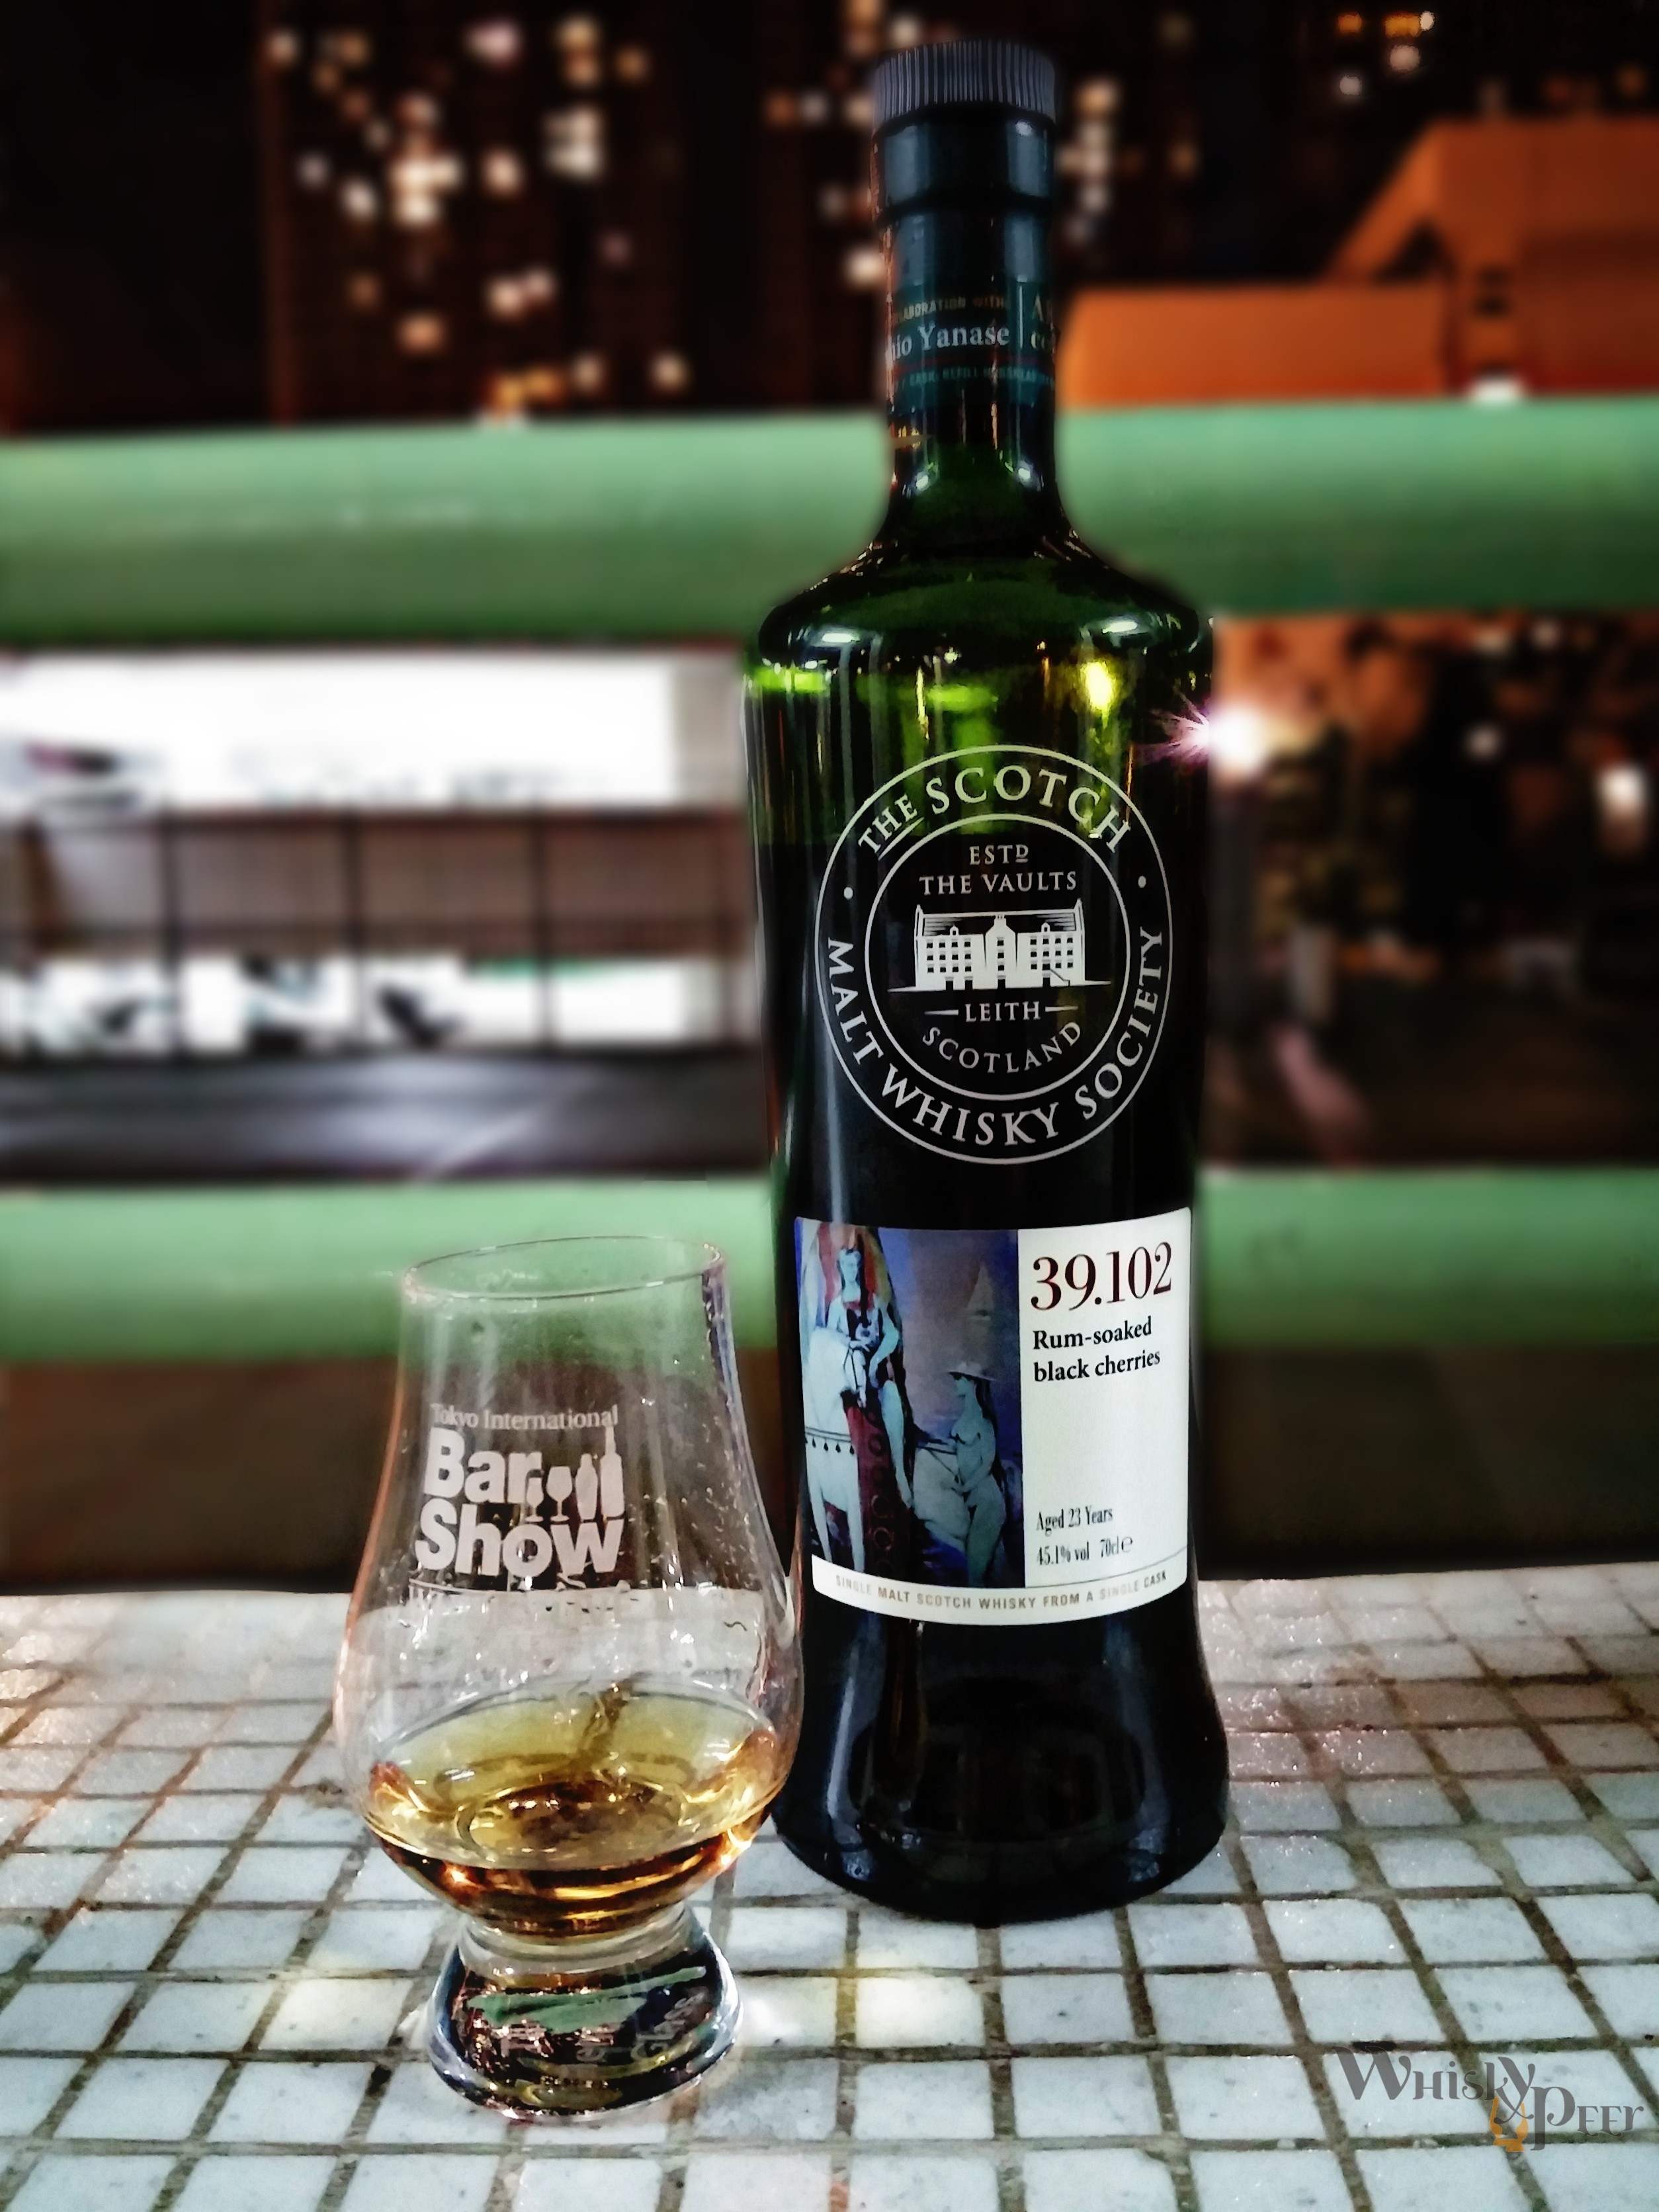 SMWS 39.102 Rum-soaked black cherries